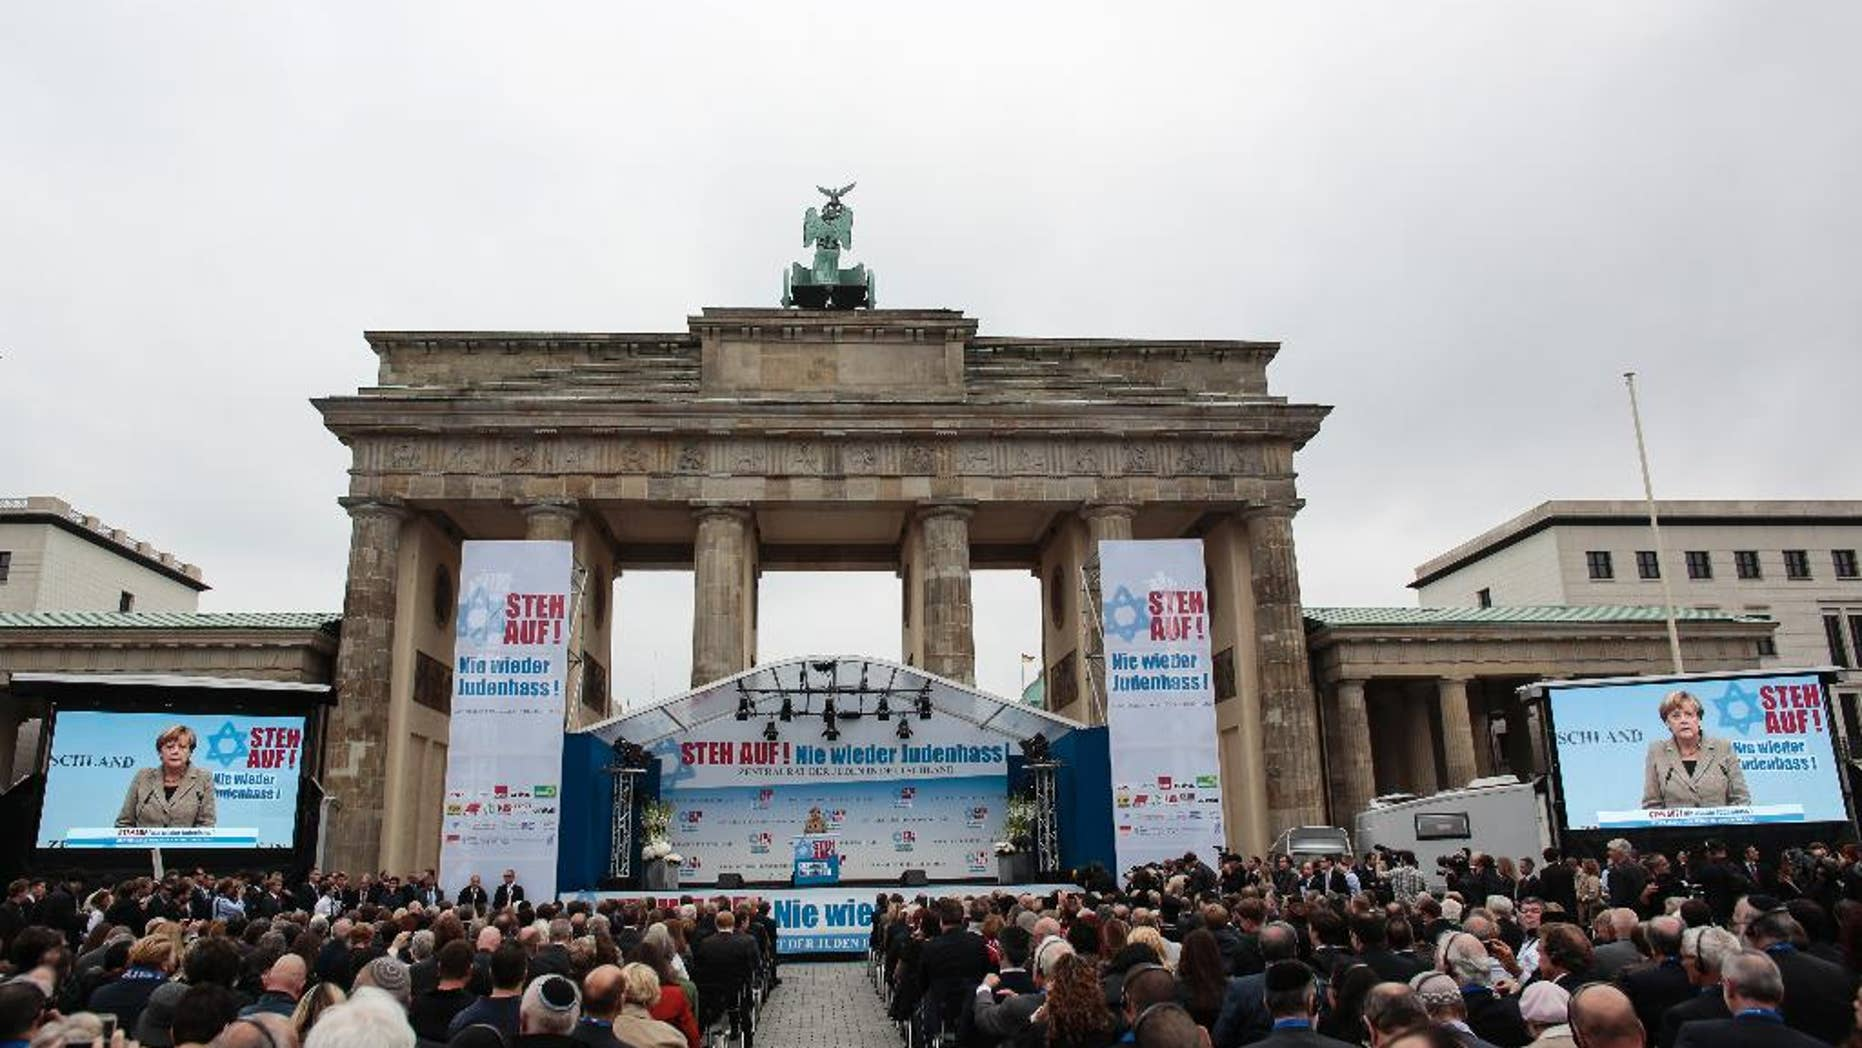 German Chancellor Angela Merkel delivers her speech at a rally against anti-Semitism near the Brandenburg Gate in Berlin, Sunday, Sept. 14, 2014.   Thousands of protesters attended  the public rally  organized  by Germany's Jewish community at the capital's Brandenburg Gate after tensions over the Gaza conflict spilled over into demonstrations in Europe that saw anti-Jewish slogans and violence. The slogan reads: Stand Up! - Jew hatred - never again!', and the name of the organizer: Central Council of Jews in Germany. (AP Photo/Markus Schreiber)